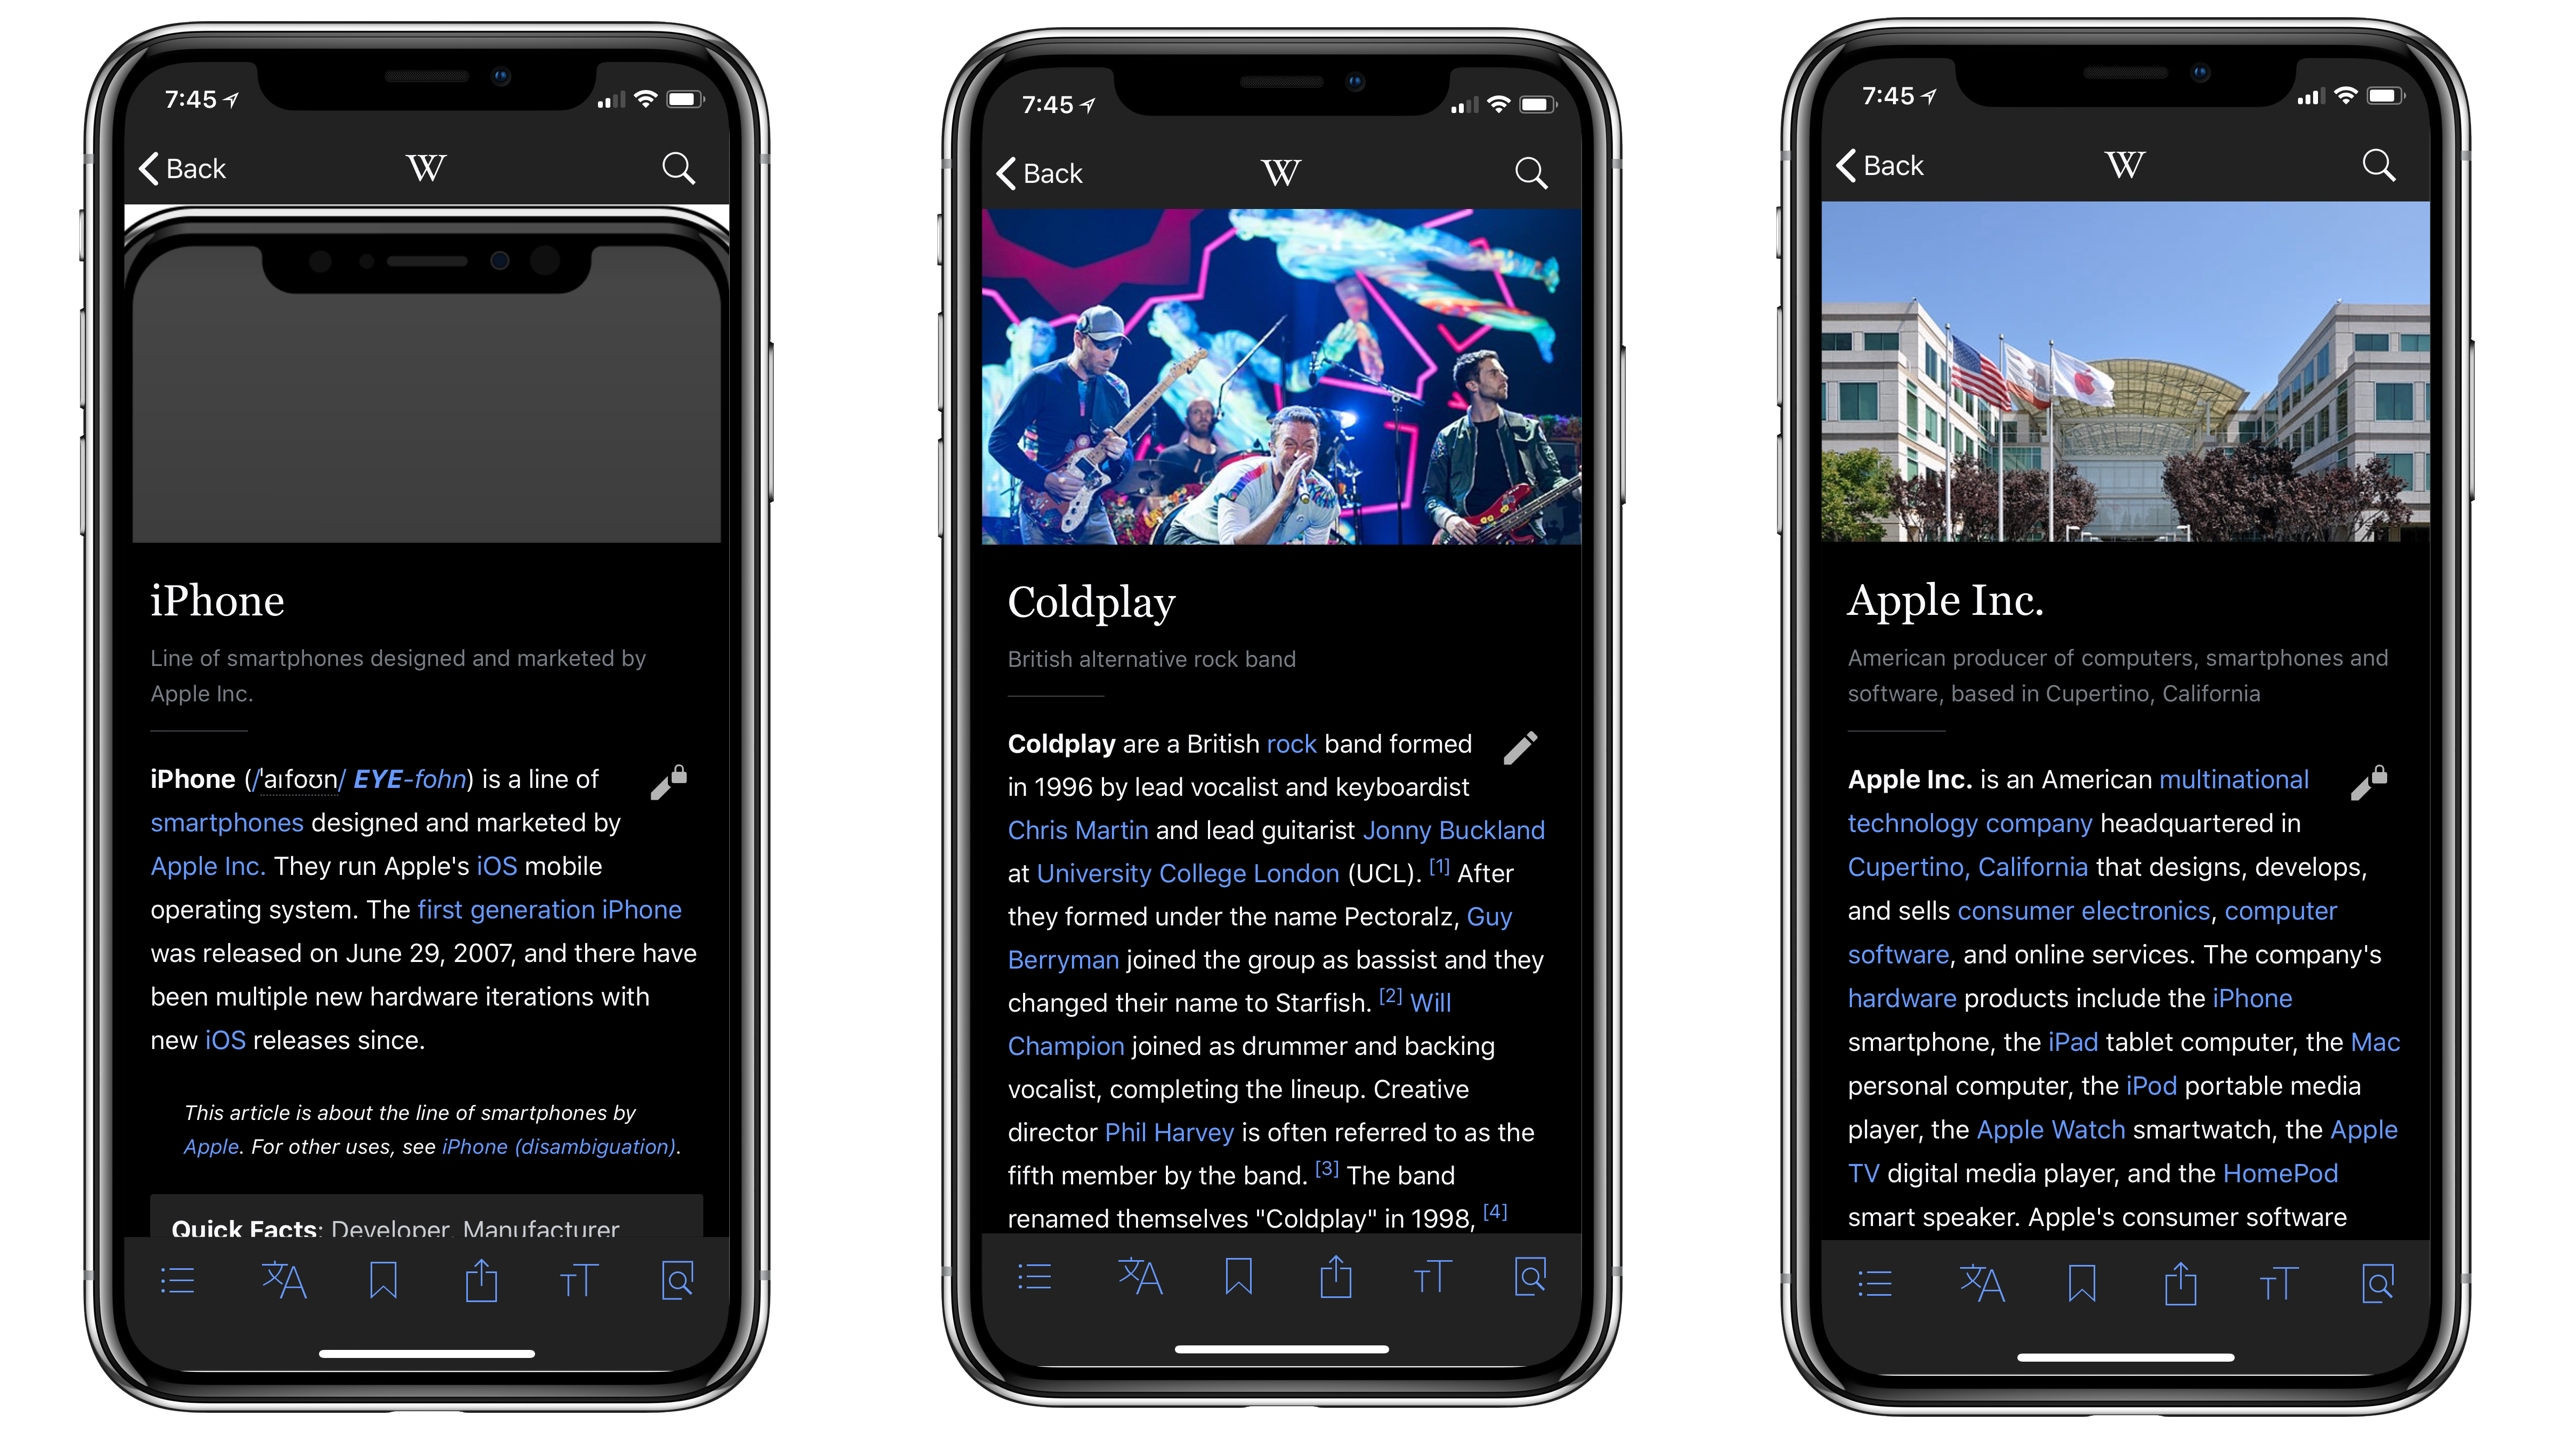 Wikipedia For IOS Adds New Black Mode For IPhone X's OLED